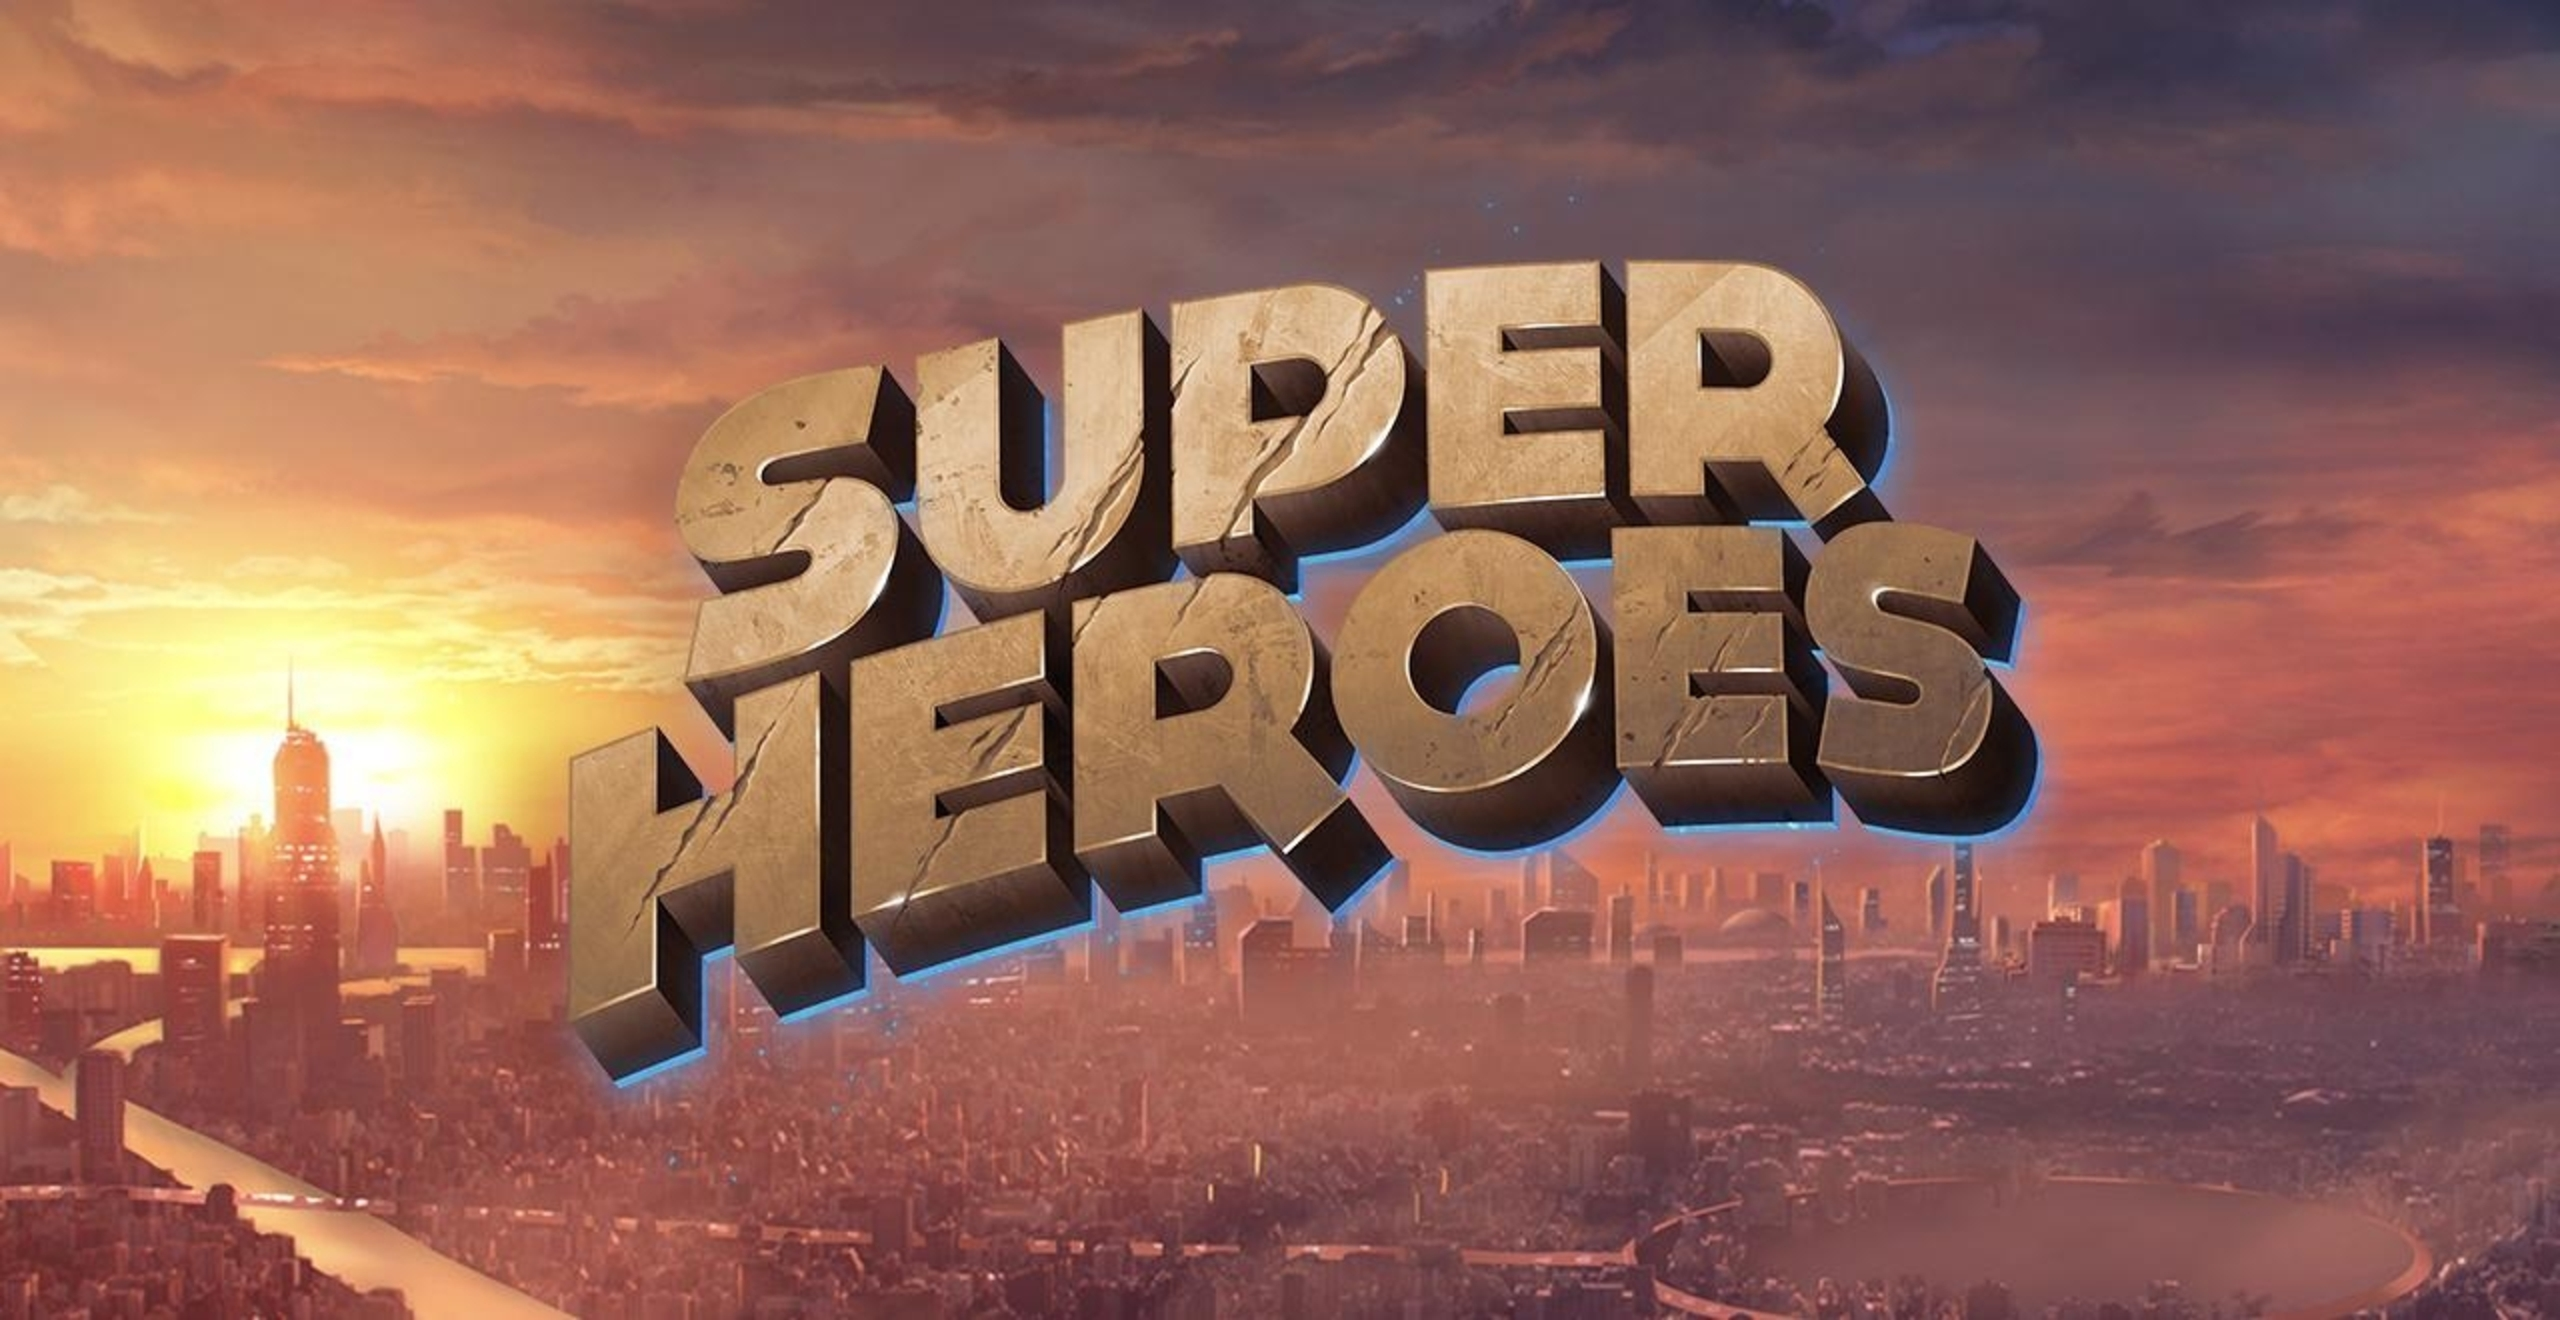 The Super Heroes Online Slot Demo Game by Yggdrasil